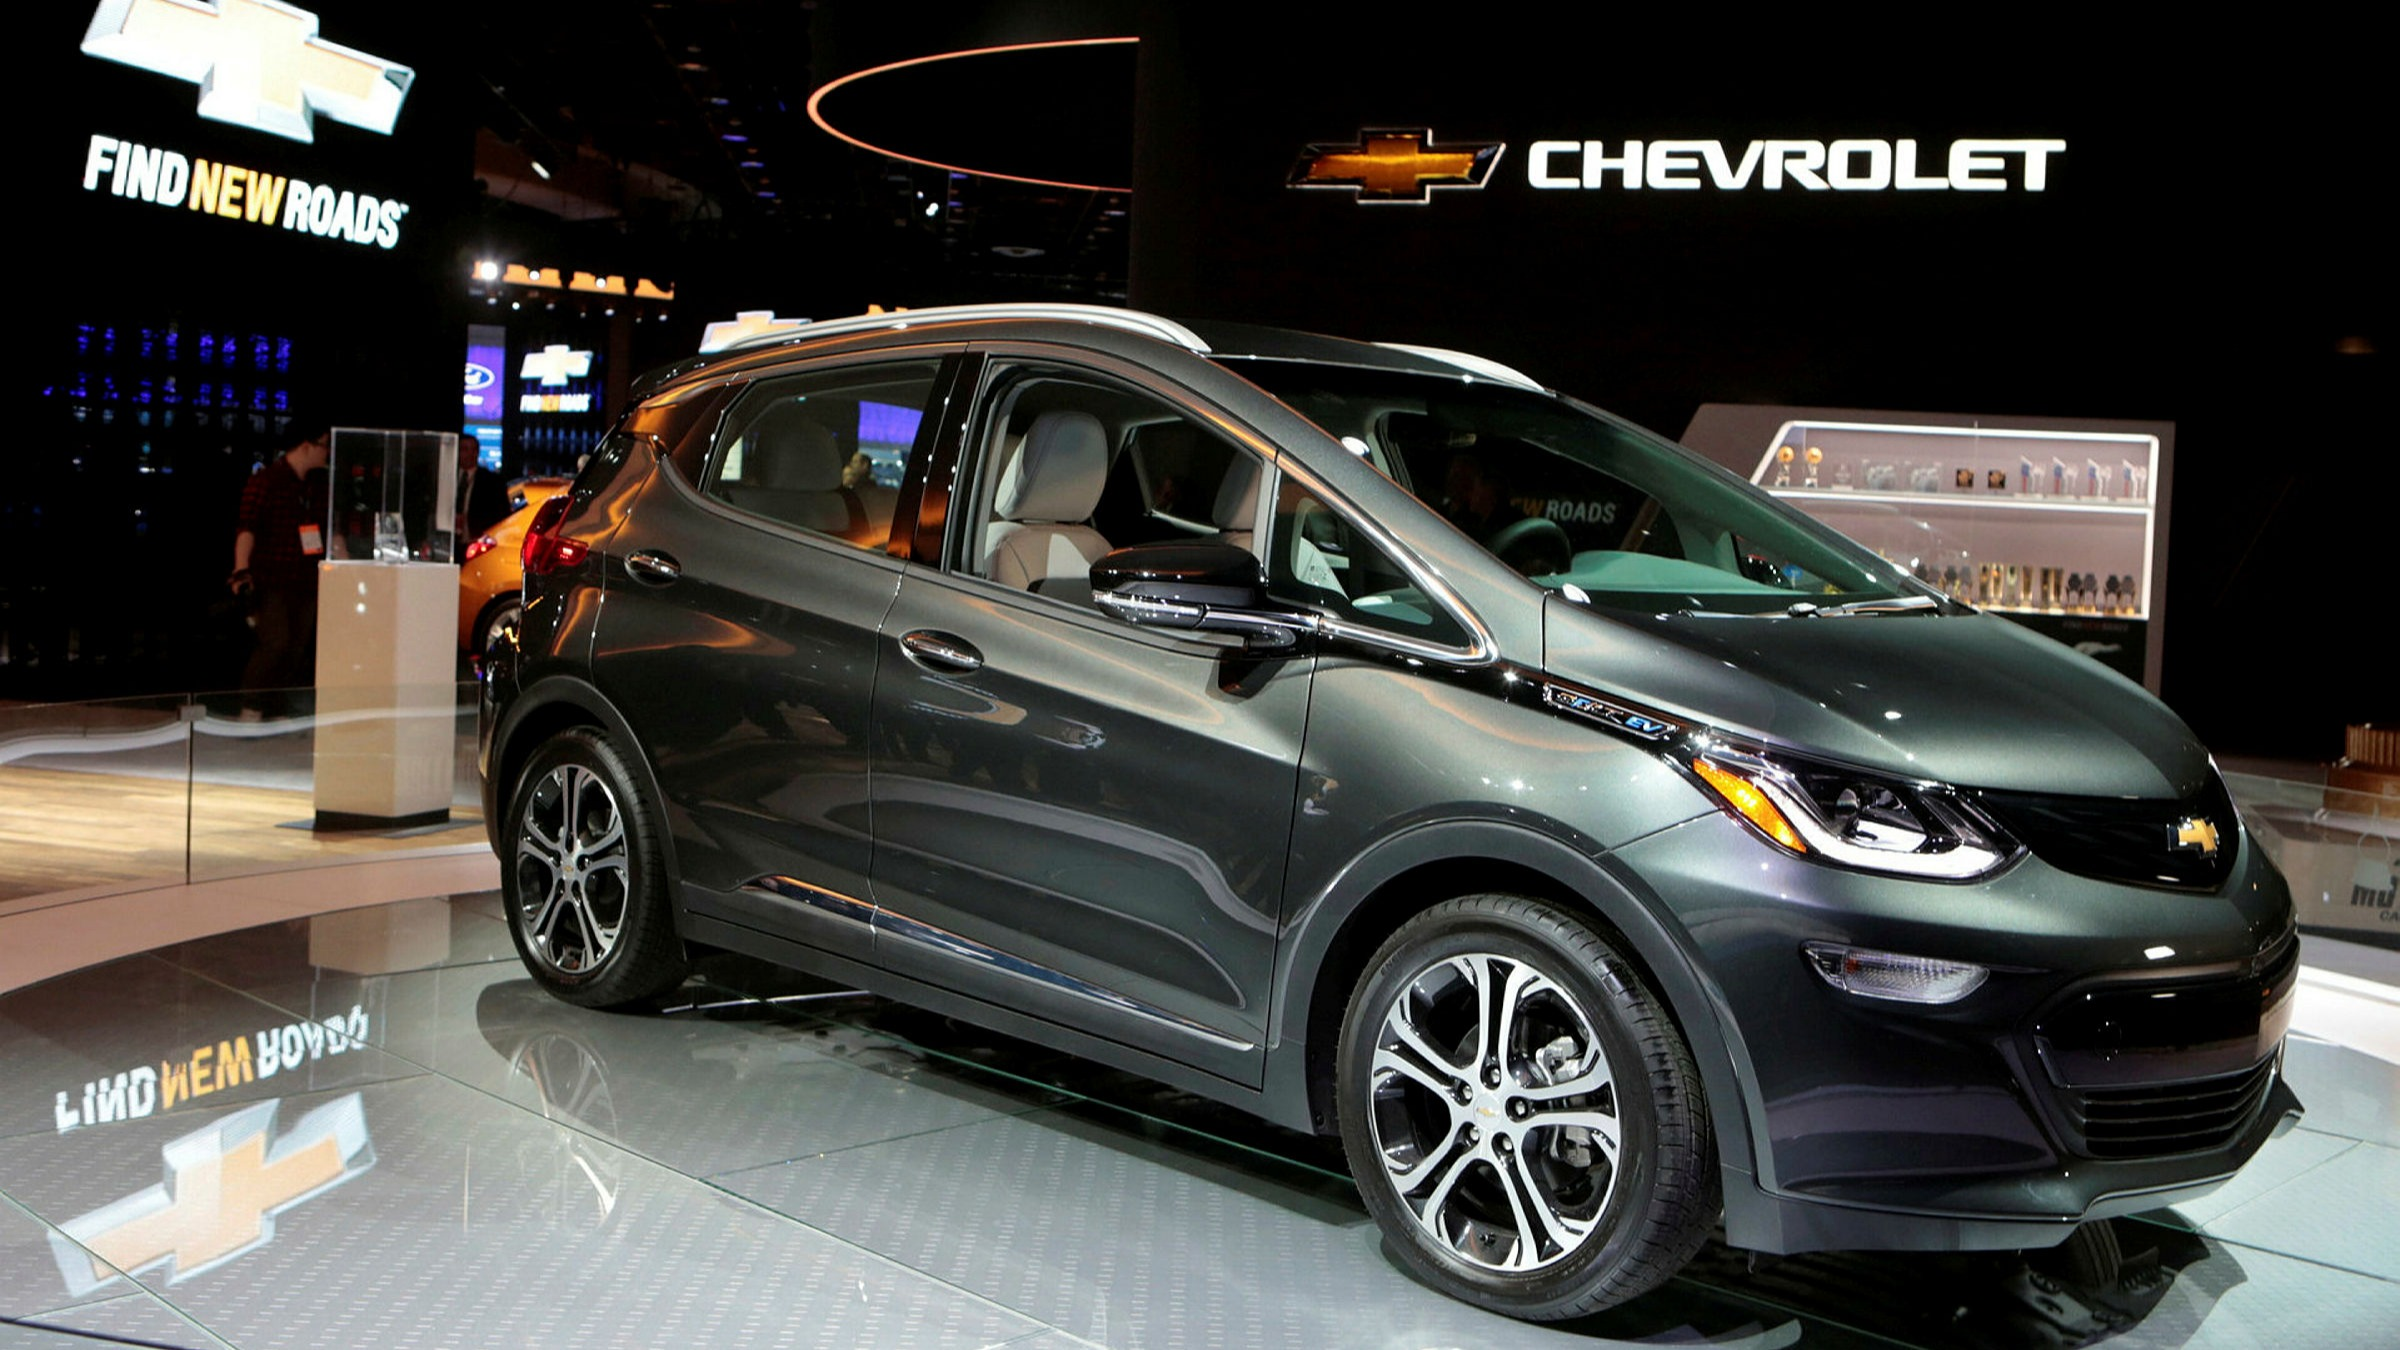 LG Chem hit by GM recall of Bolt electric vehicles   Financial Times